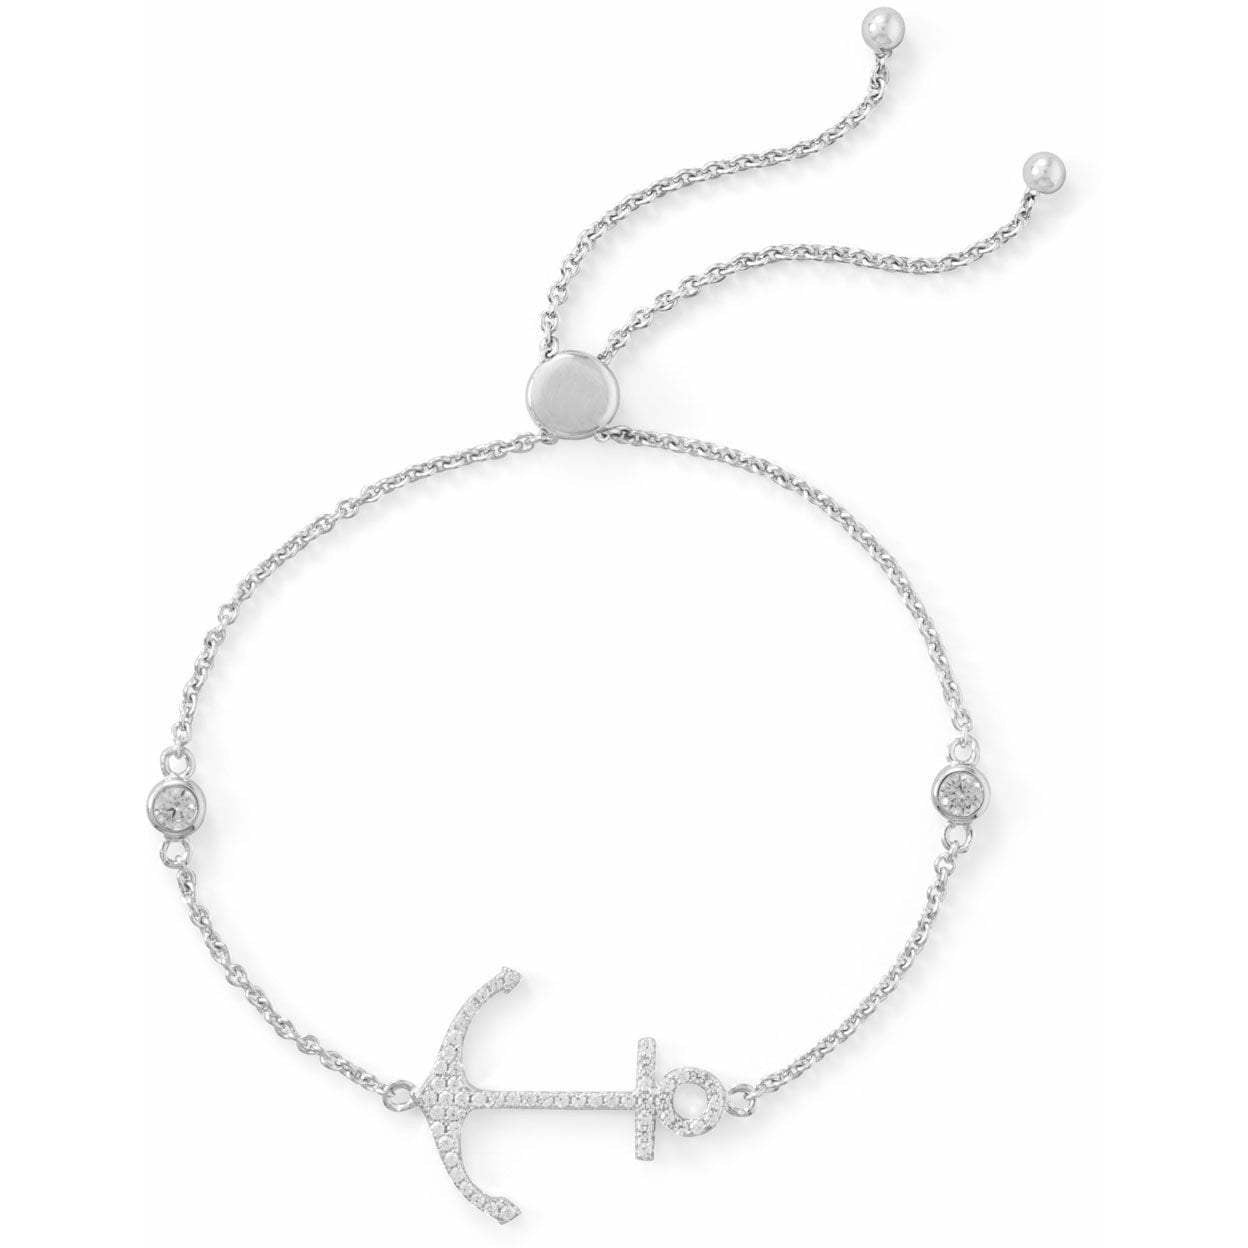 Rhodium Plated cubic zirconia Anchor Friendship Bolo Bracelet